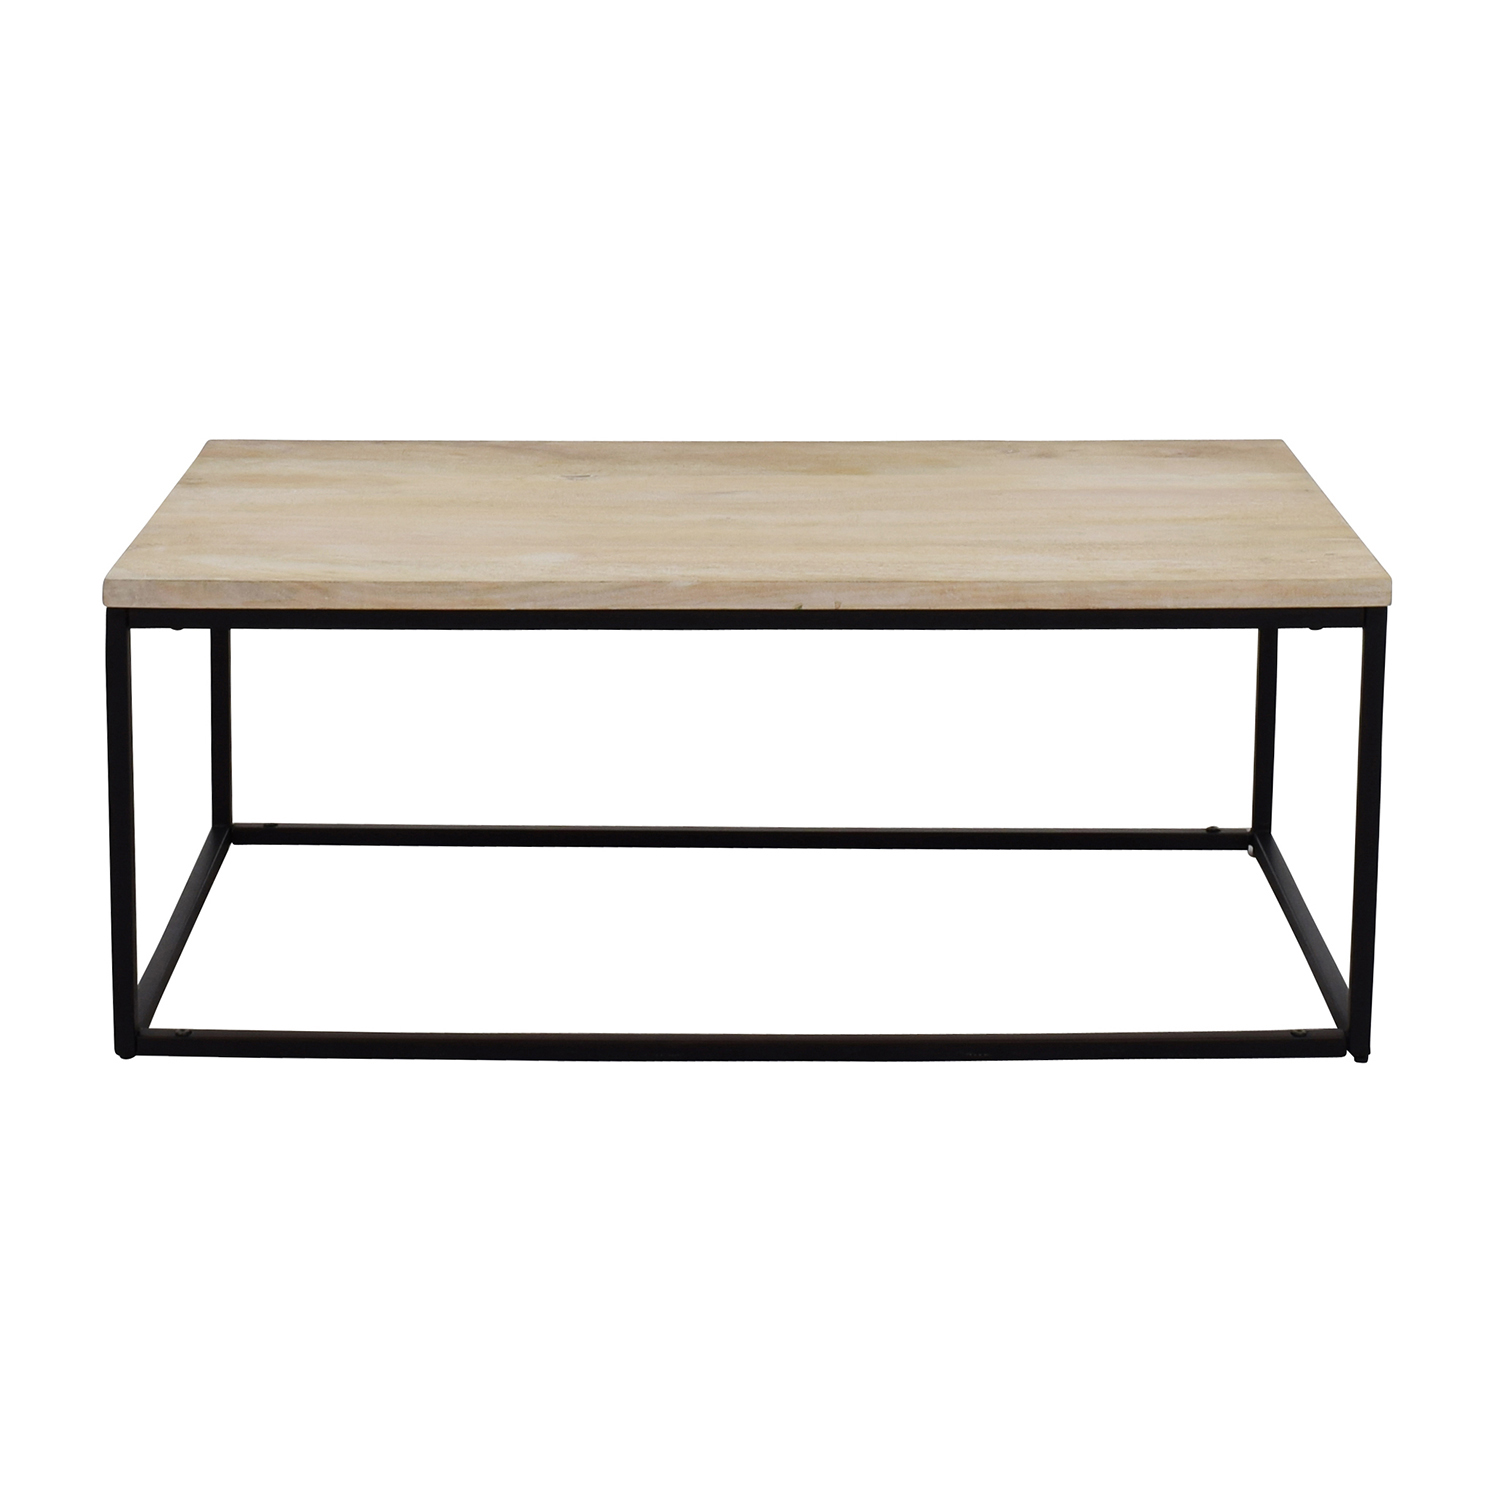 Shop West Elm West Elm Box Frame Coffee Table White Wash Online